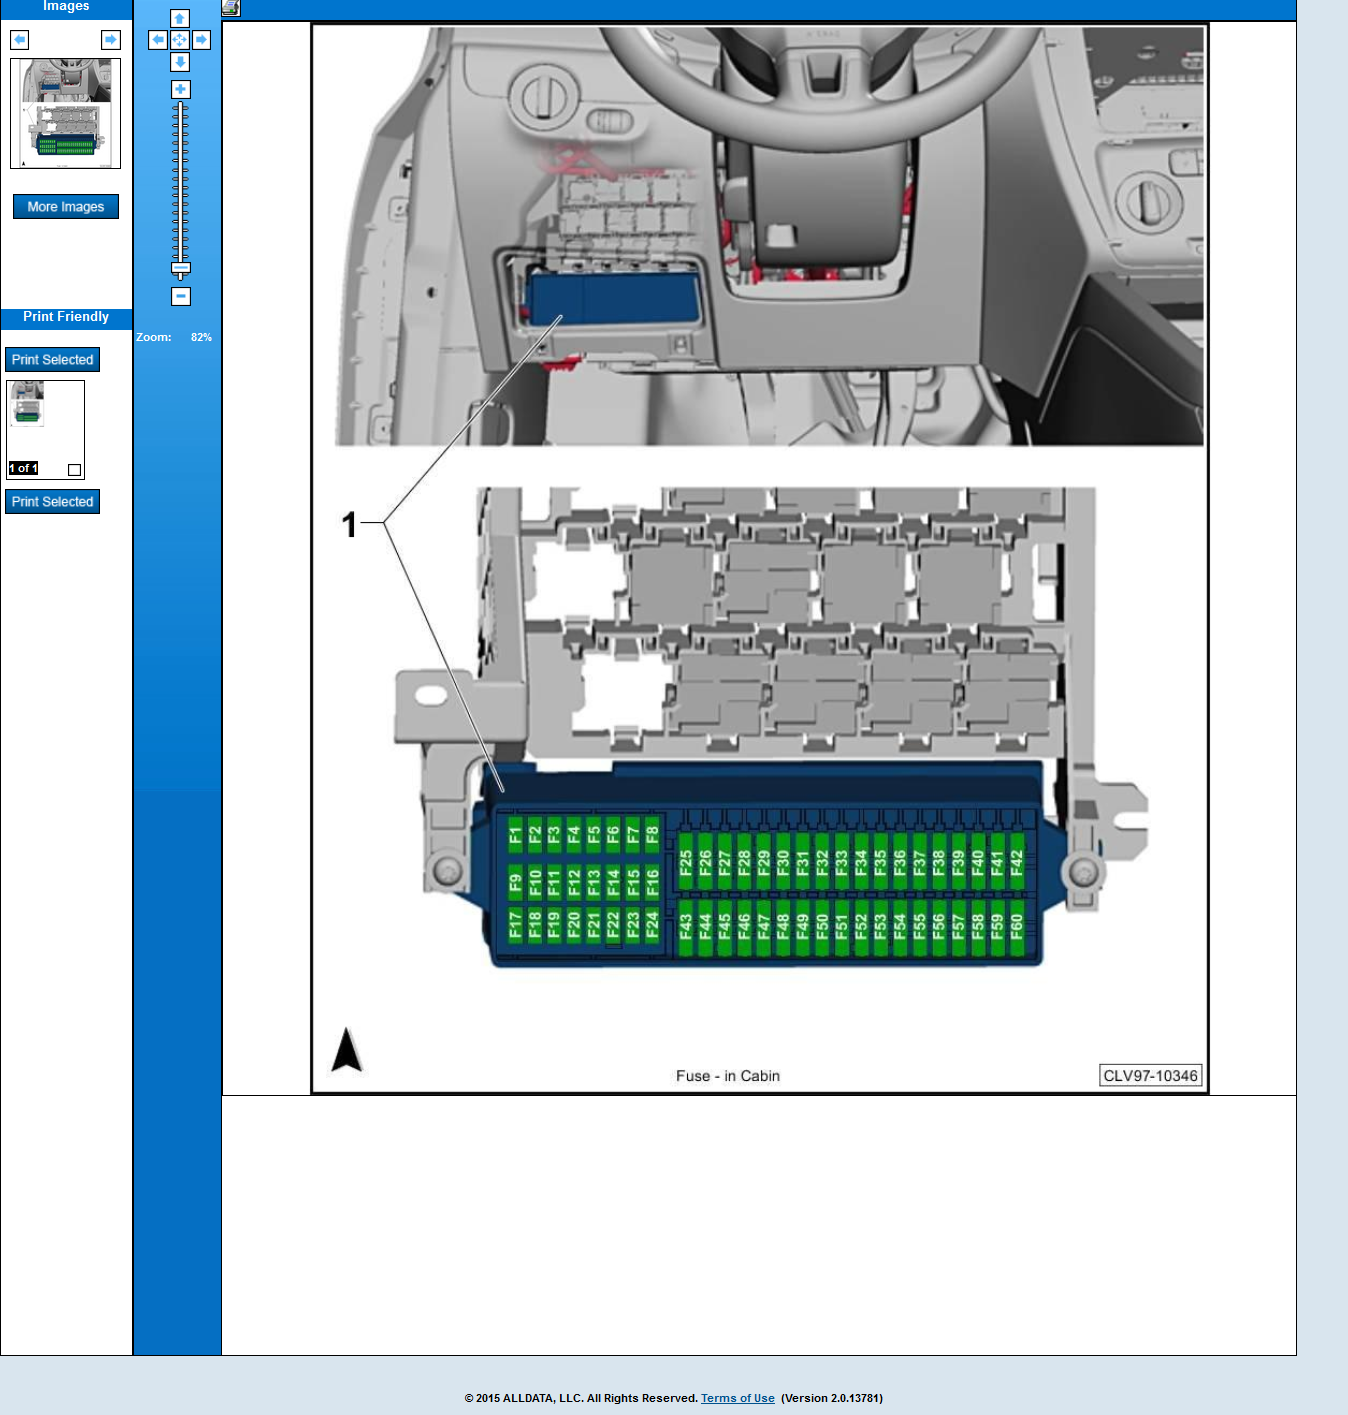 i need to find the correct fuse for my radio in my 2011 vw ... 2011 jetta fuse diagram radio #2